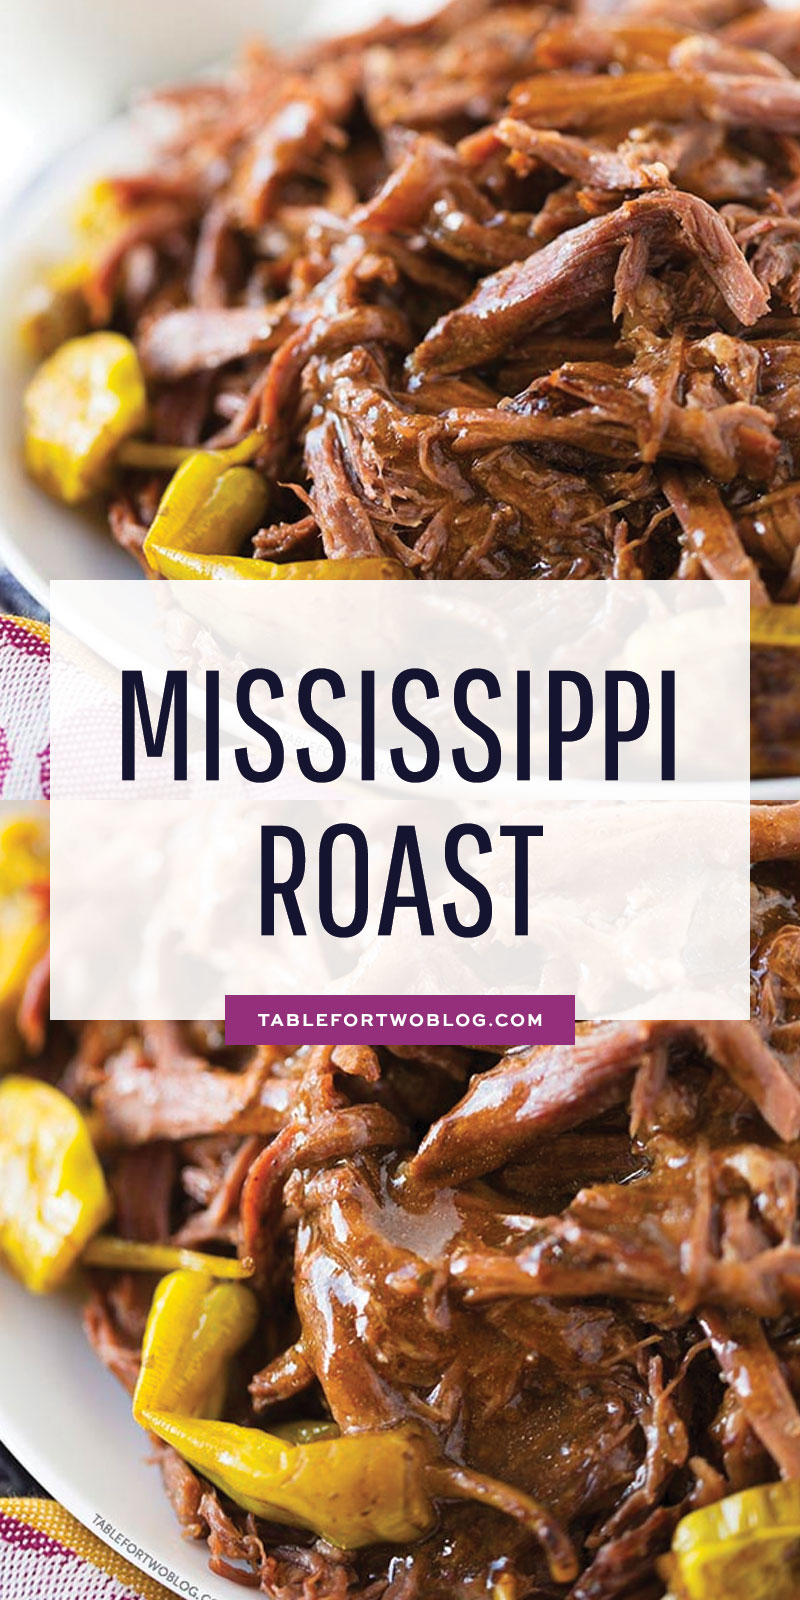 This Mississippi Roast involves a slow cooker, five simple ingredients, zero effort, 100% dinner & leftover satisfaction! #mississippiroast #roast #easydinner #dinner #roast